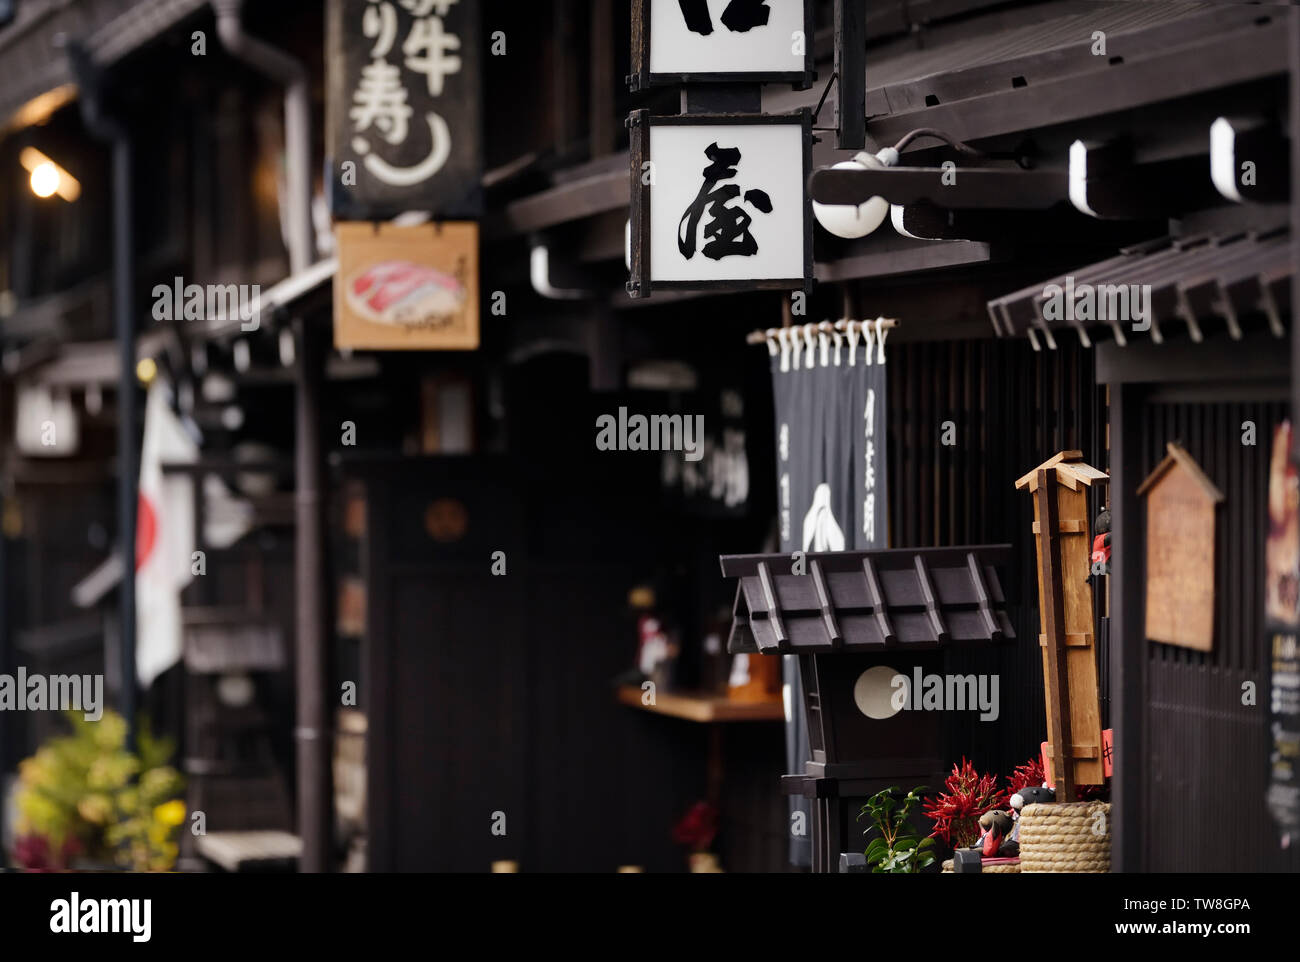 Shop and restaurant signs at Kamisannomachi, old town merchant street in Takayama city, artistic closeup. Kami-sannomachi, historic merchant town Stock Photo